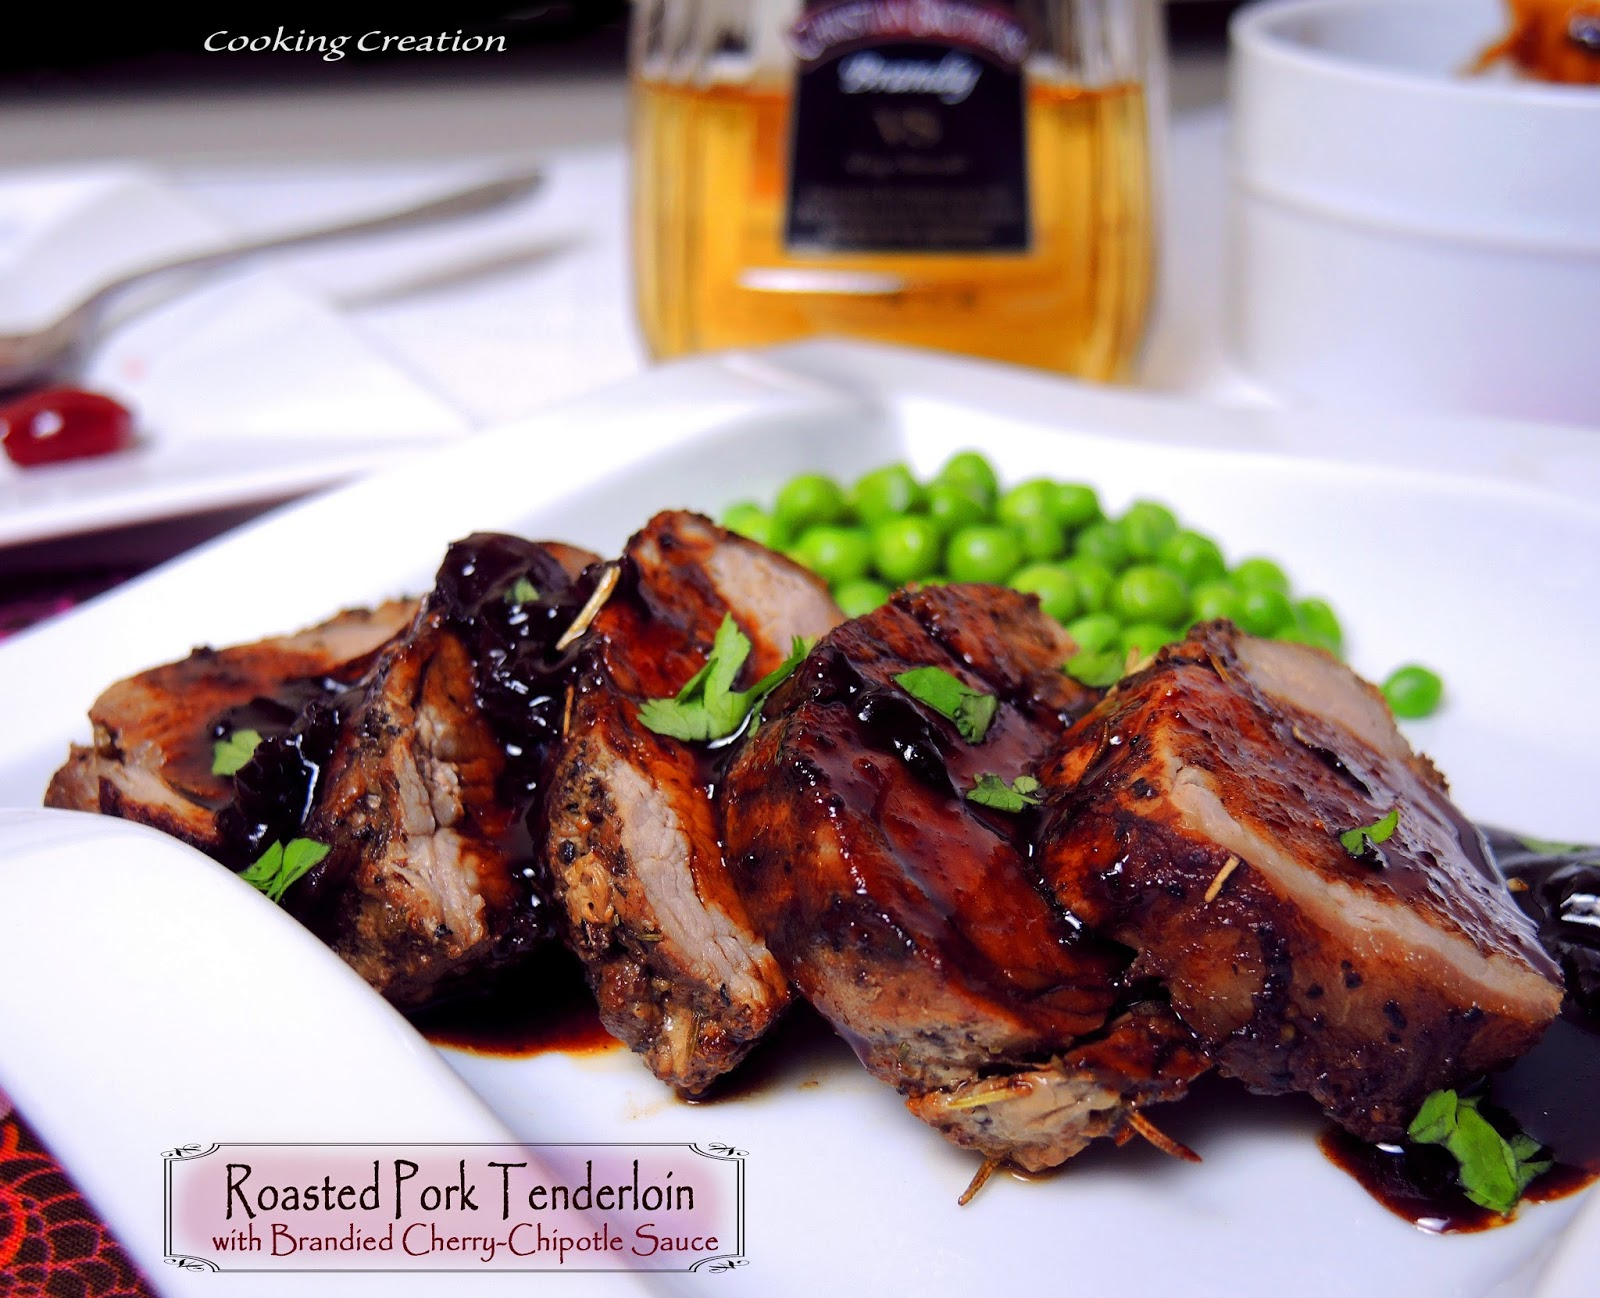 Cooking Creation: Pork Tenderloin with Brandied Cherry-Chipotle Sauce